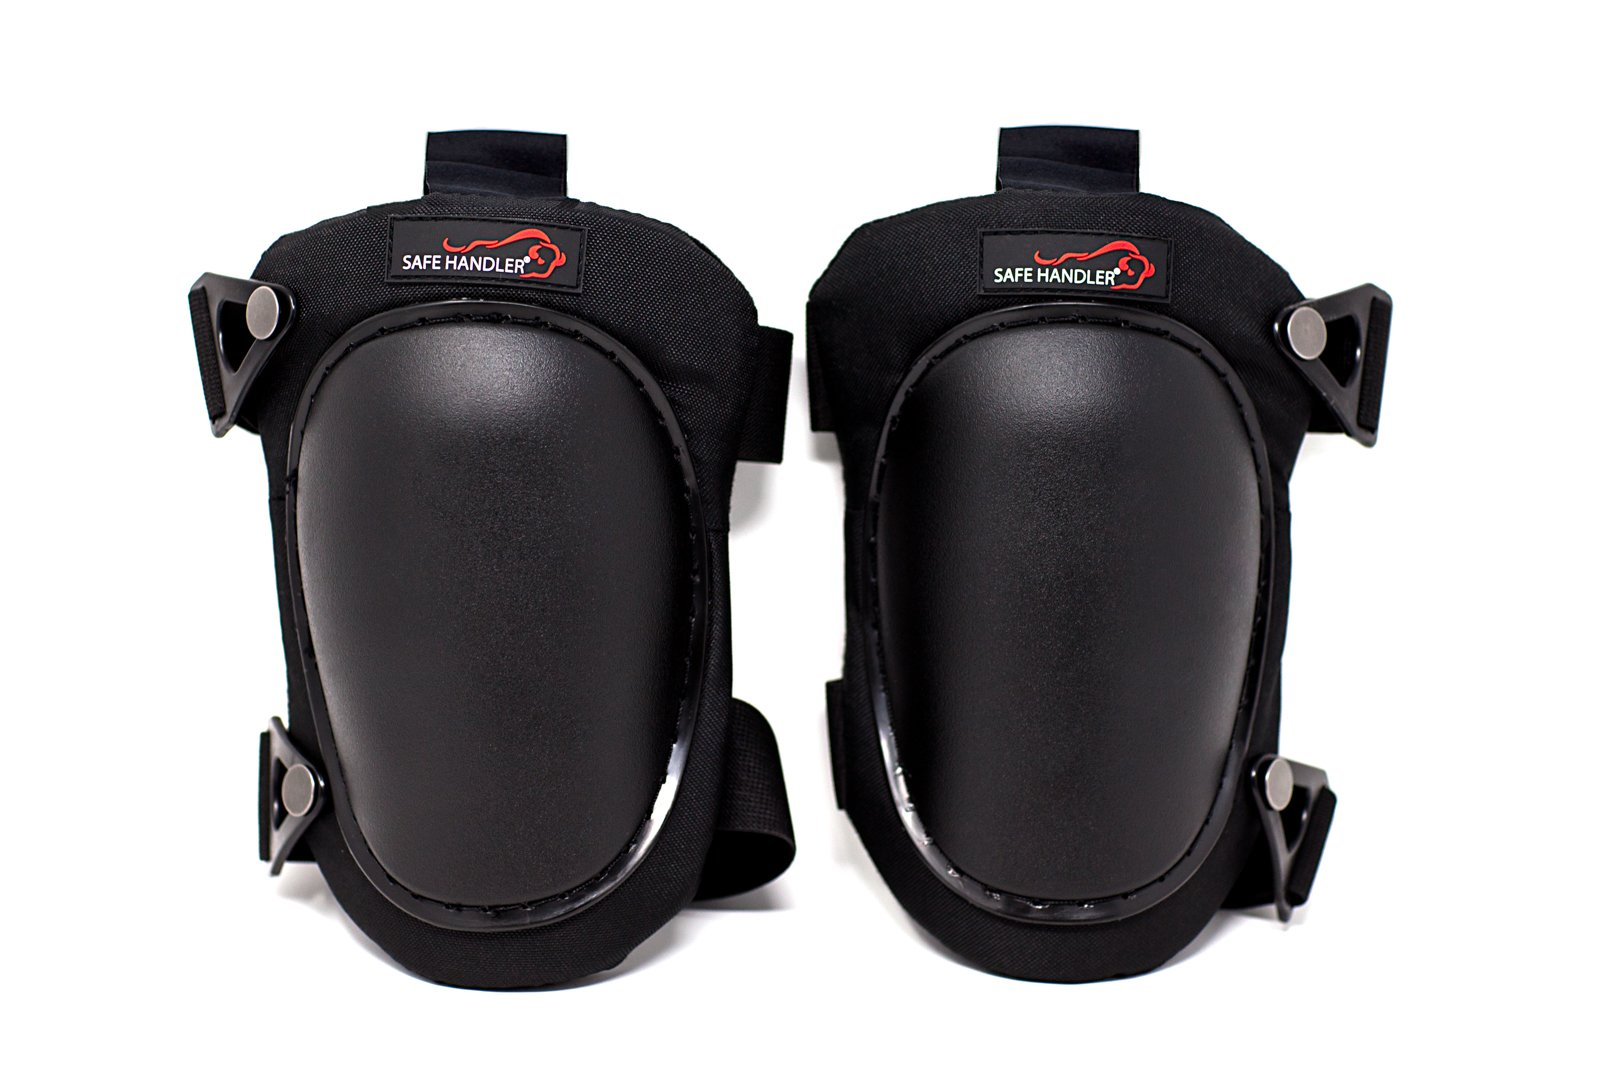 SAFE HANDLER Professional Knee Pads with High Density PP Cap and Heavy Duty Padding | Comfortable Strong Adjustable Double Straps and Durable Hook Closure (Heavy Duty Cap, Black)